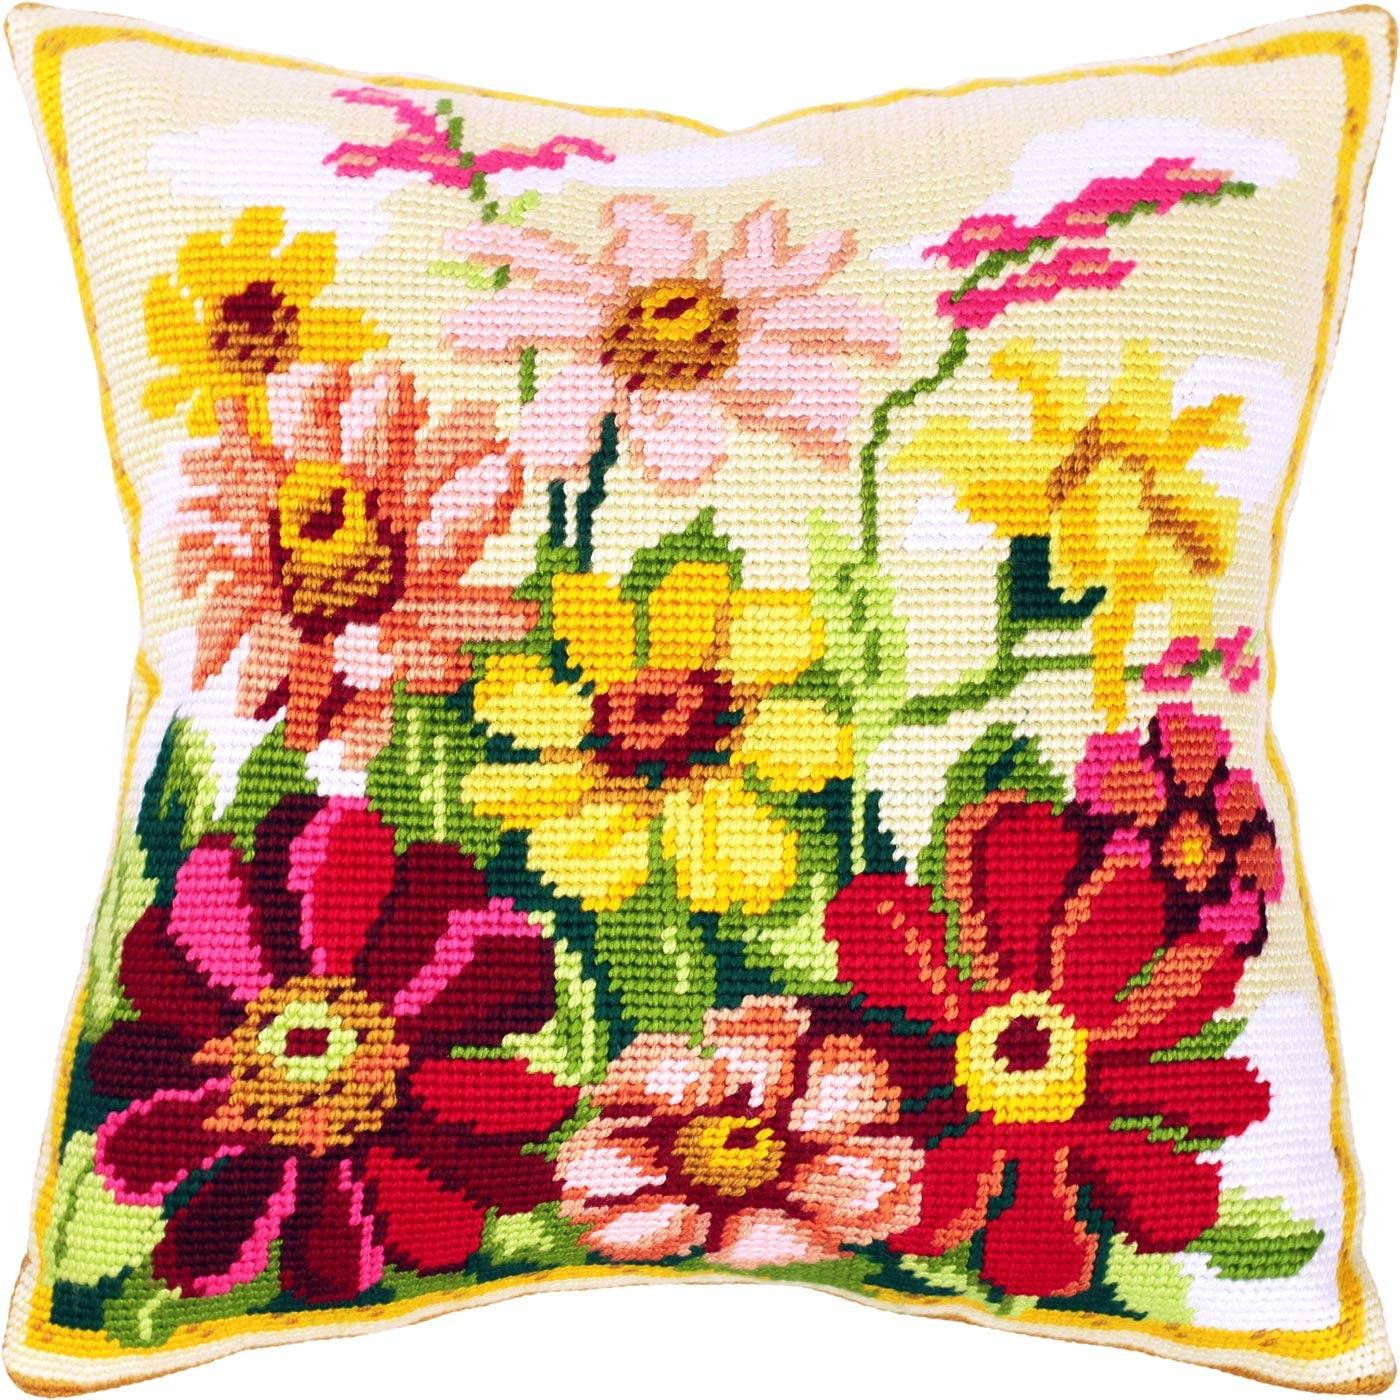 Flowers Printed Tapestry Canvas Throw Pillow case 16/×16 inches Zinnia DIY Embroidery Needlepoint Front Cushion Cover Home Decor European Quality Zinnias Cross Stitch kit